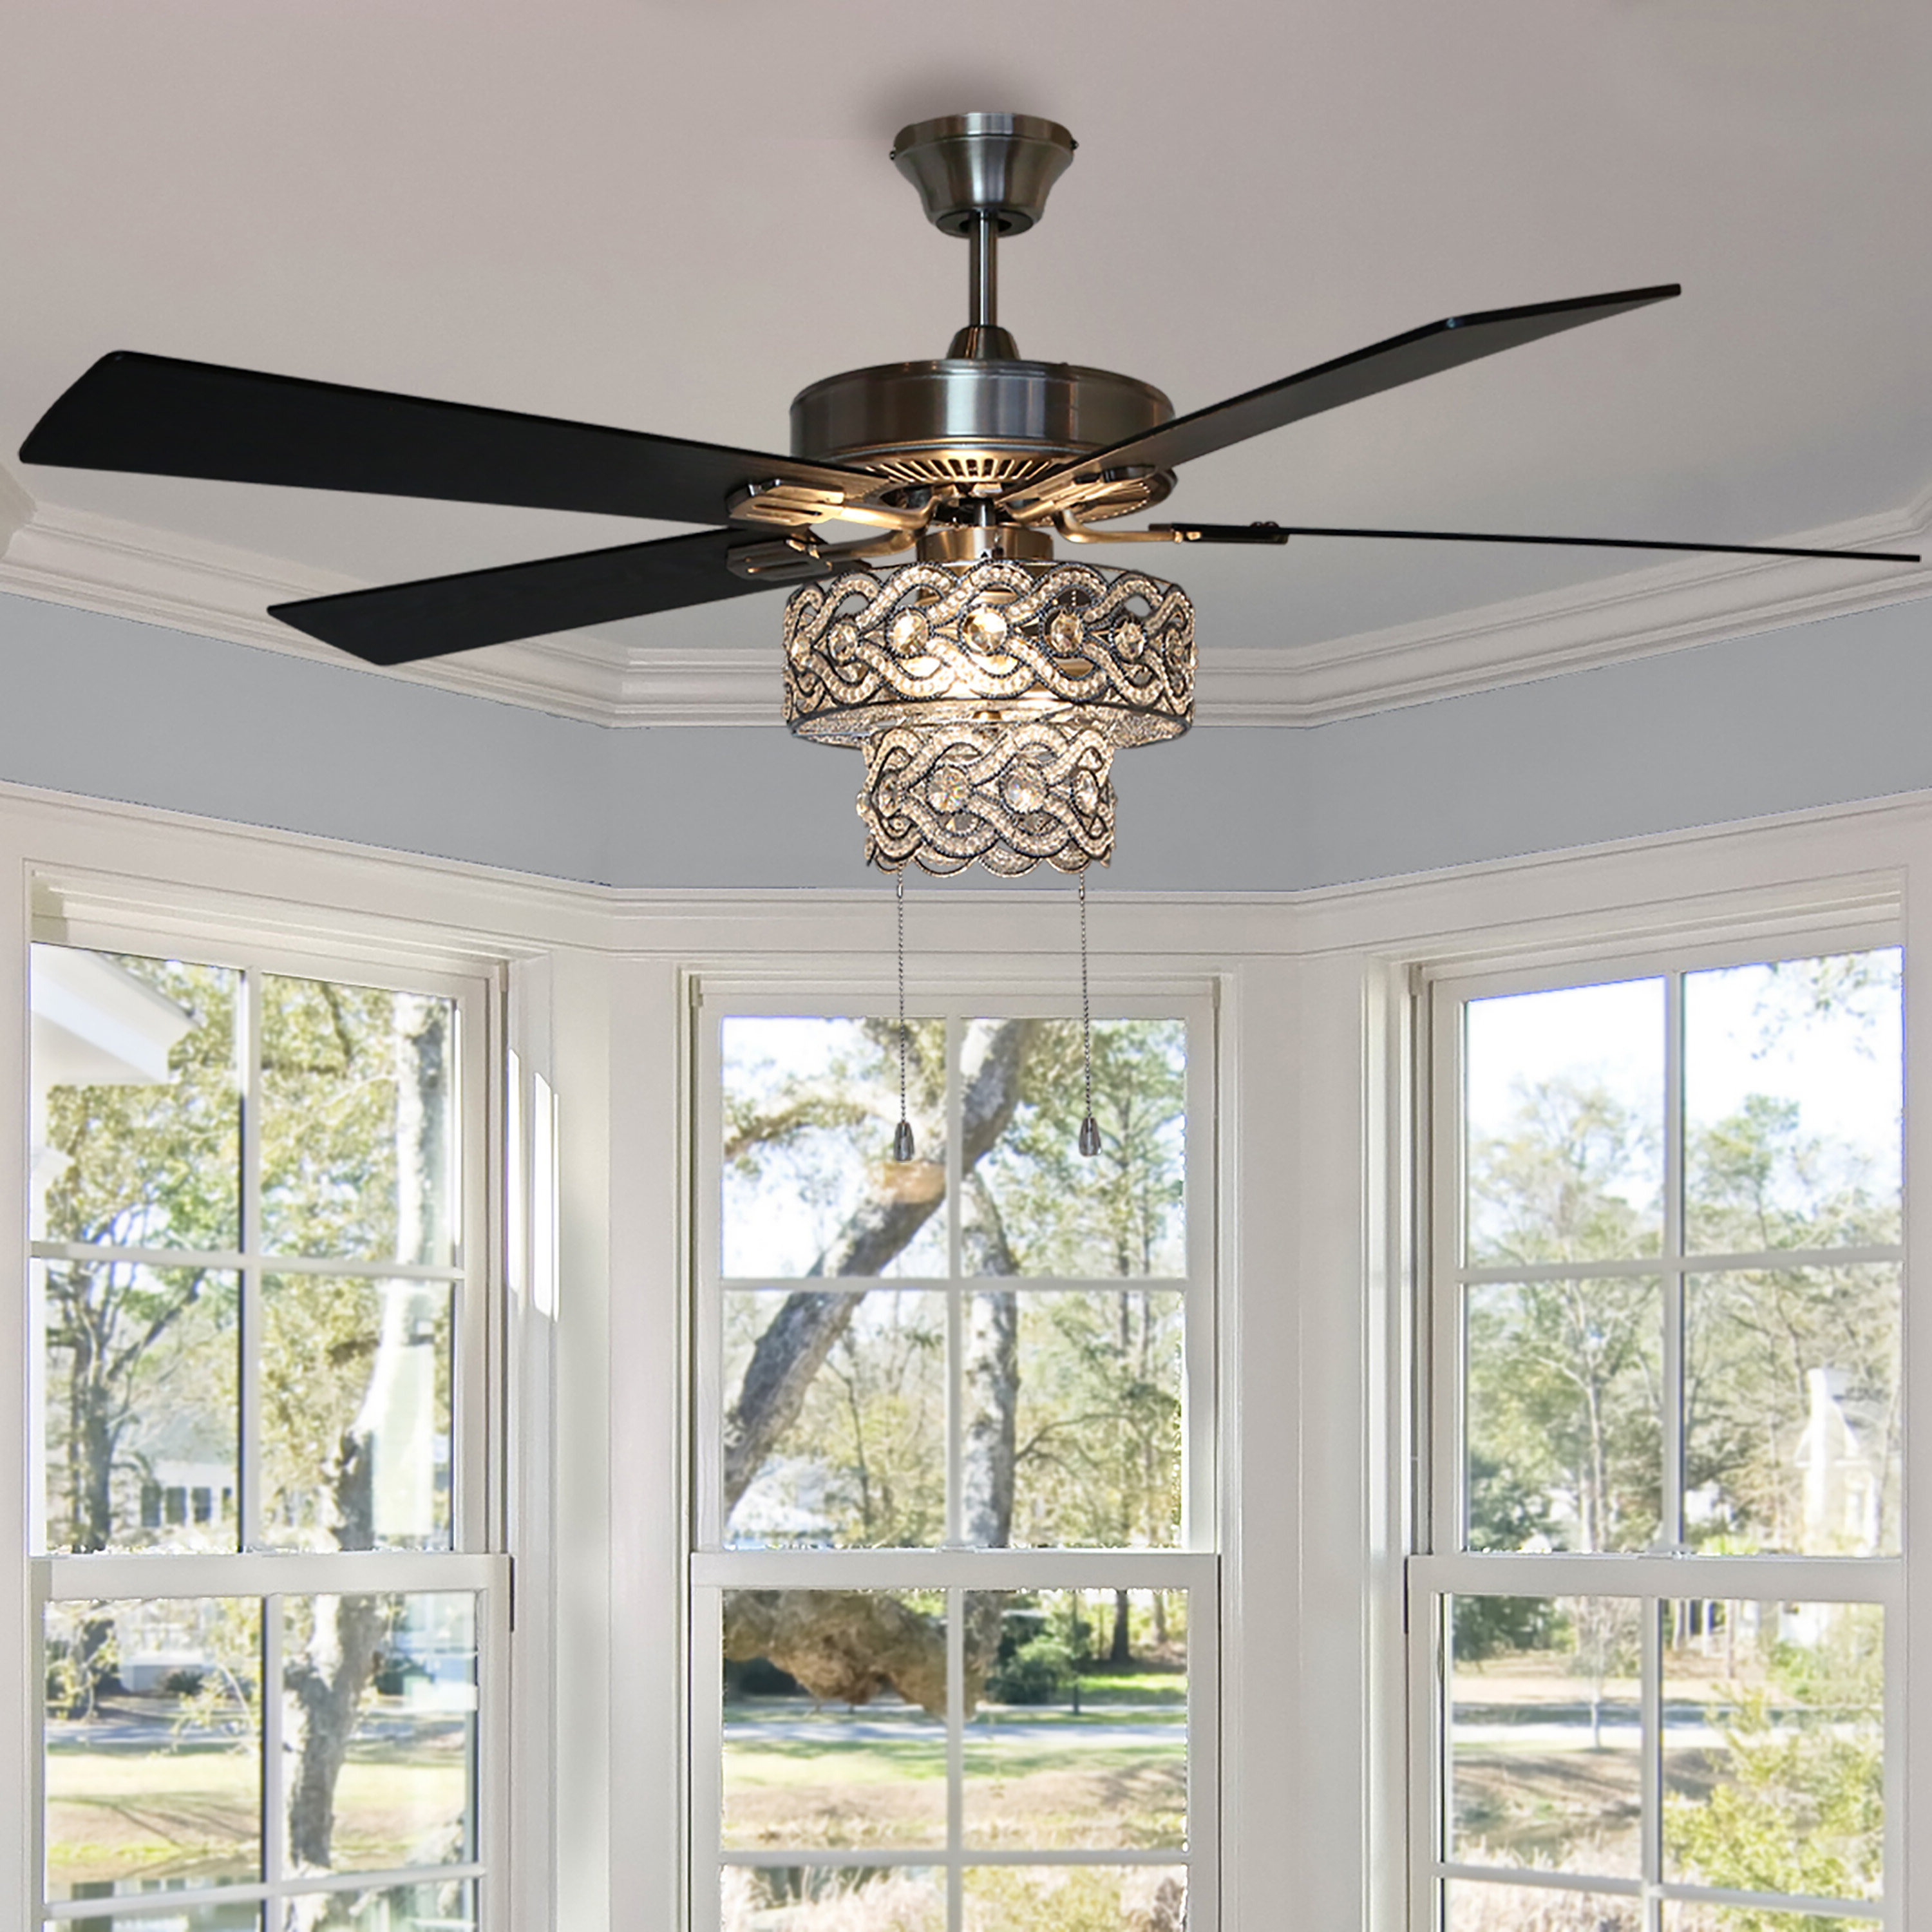 """Newest 52"""" Nowthen Beaded Braid 5 Blade Ceiling Fan With Remote, Light Kit Included Throughout Norah 5 Blade Ceiling Fans (View 8 of 20)"""